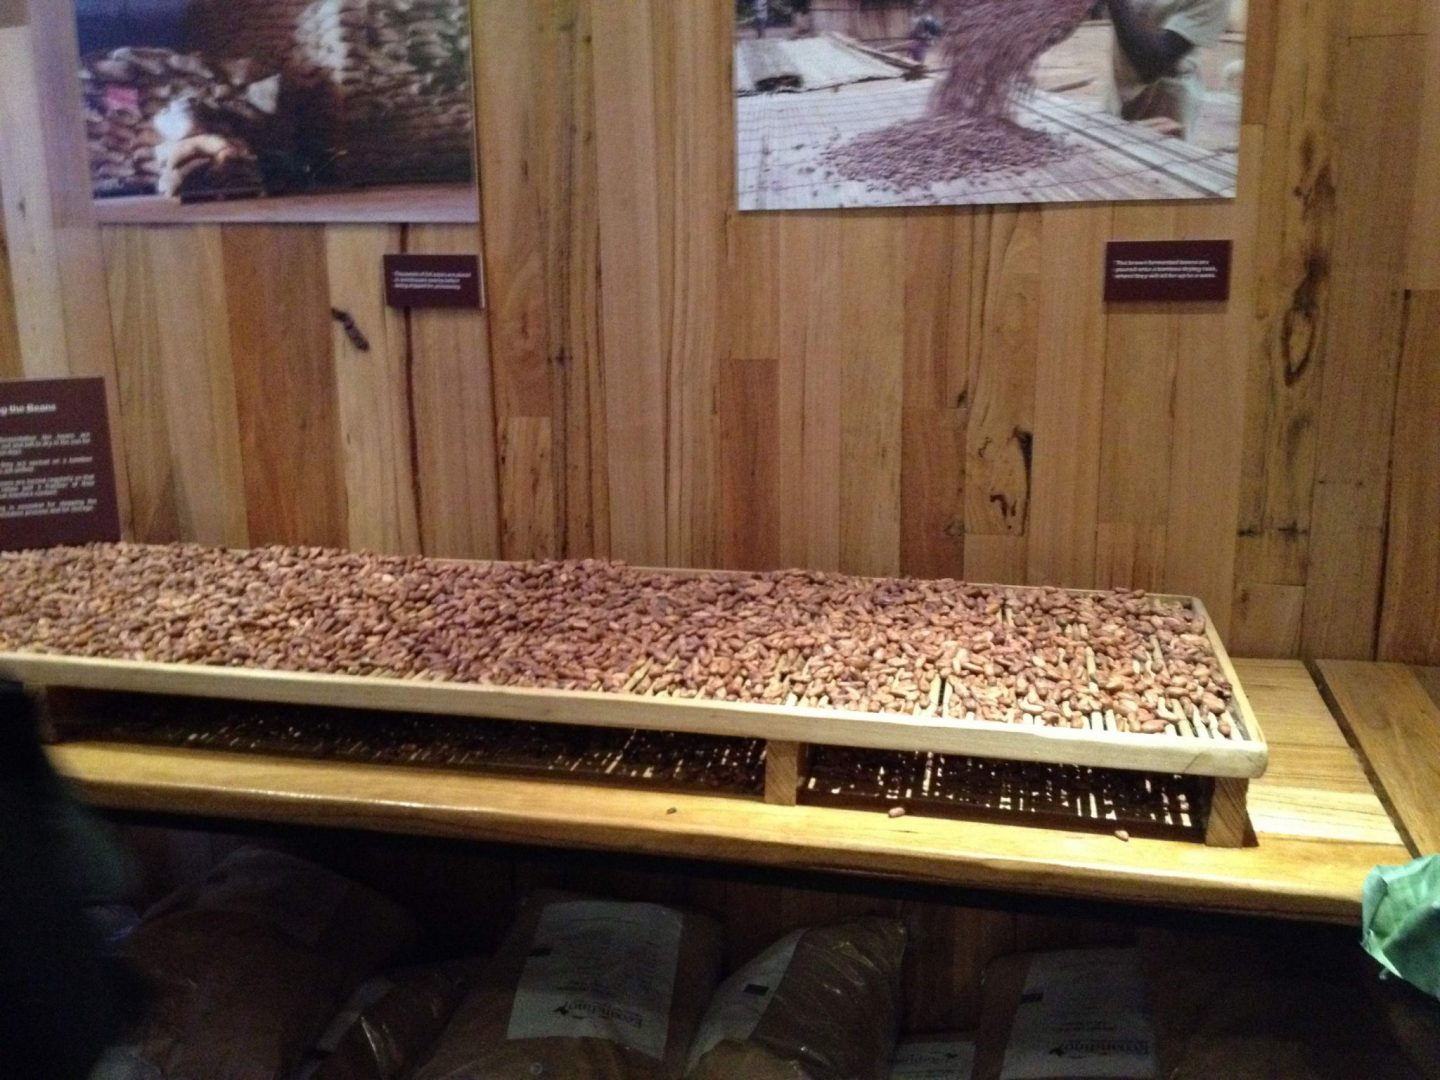 Cocoa beans at Panny's Chocolate Factory, Melbourne